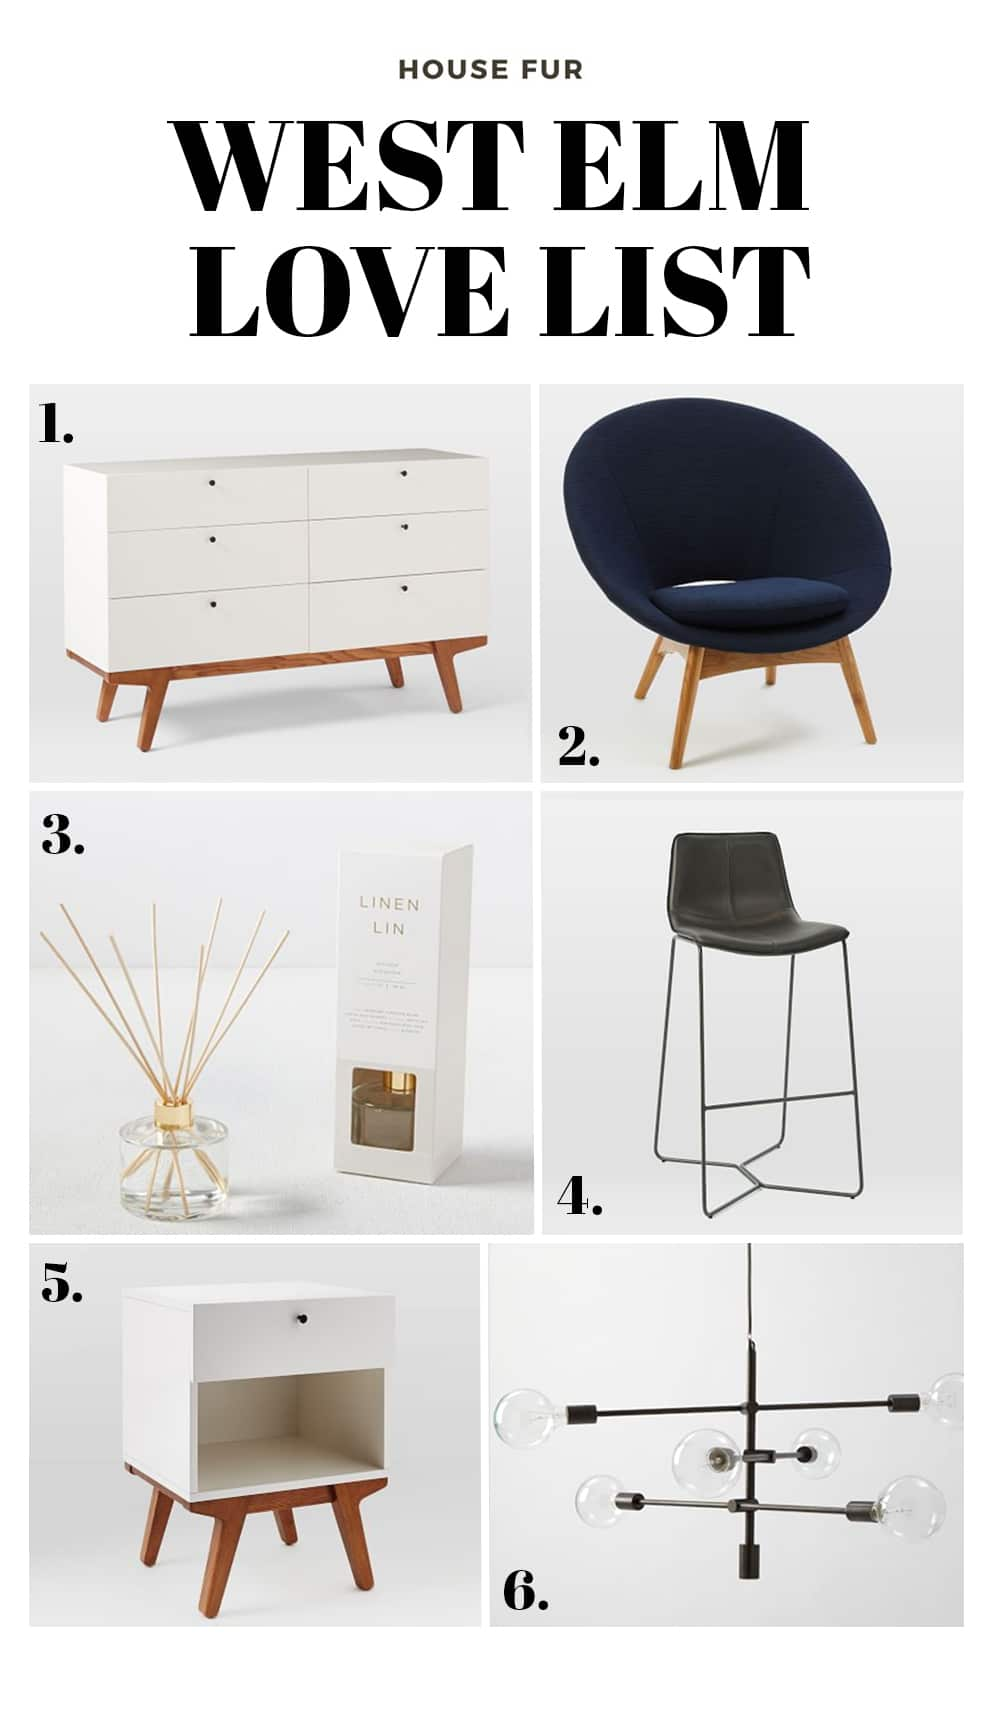 west elm love list for things I love at west elm